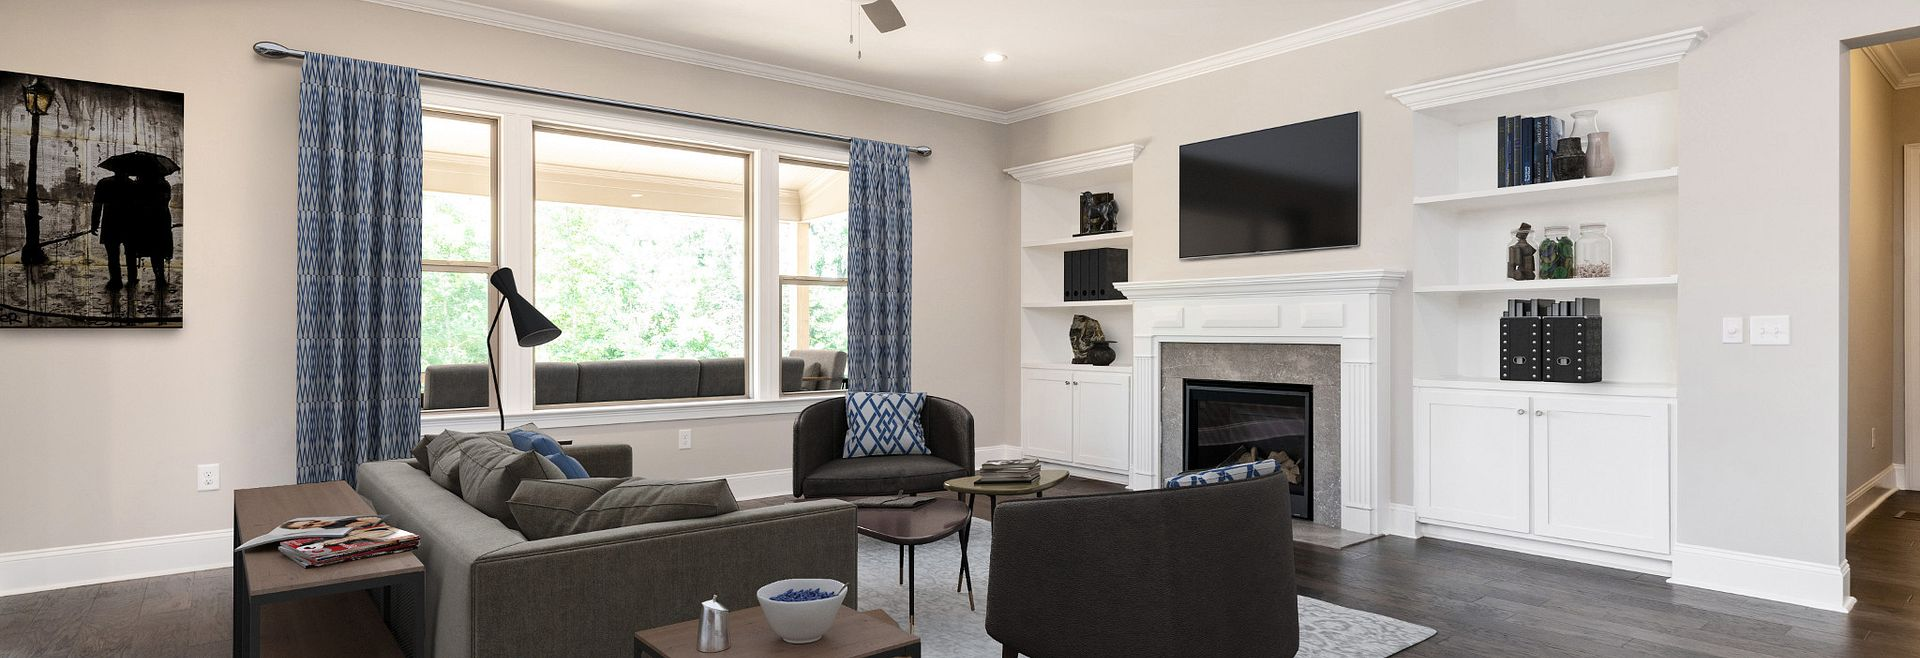 Magnolia plan Family Room (staged)